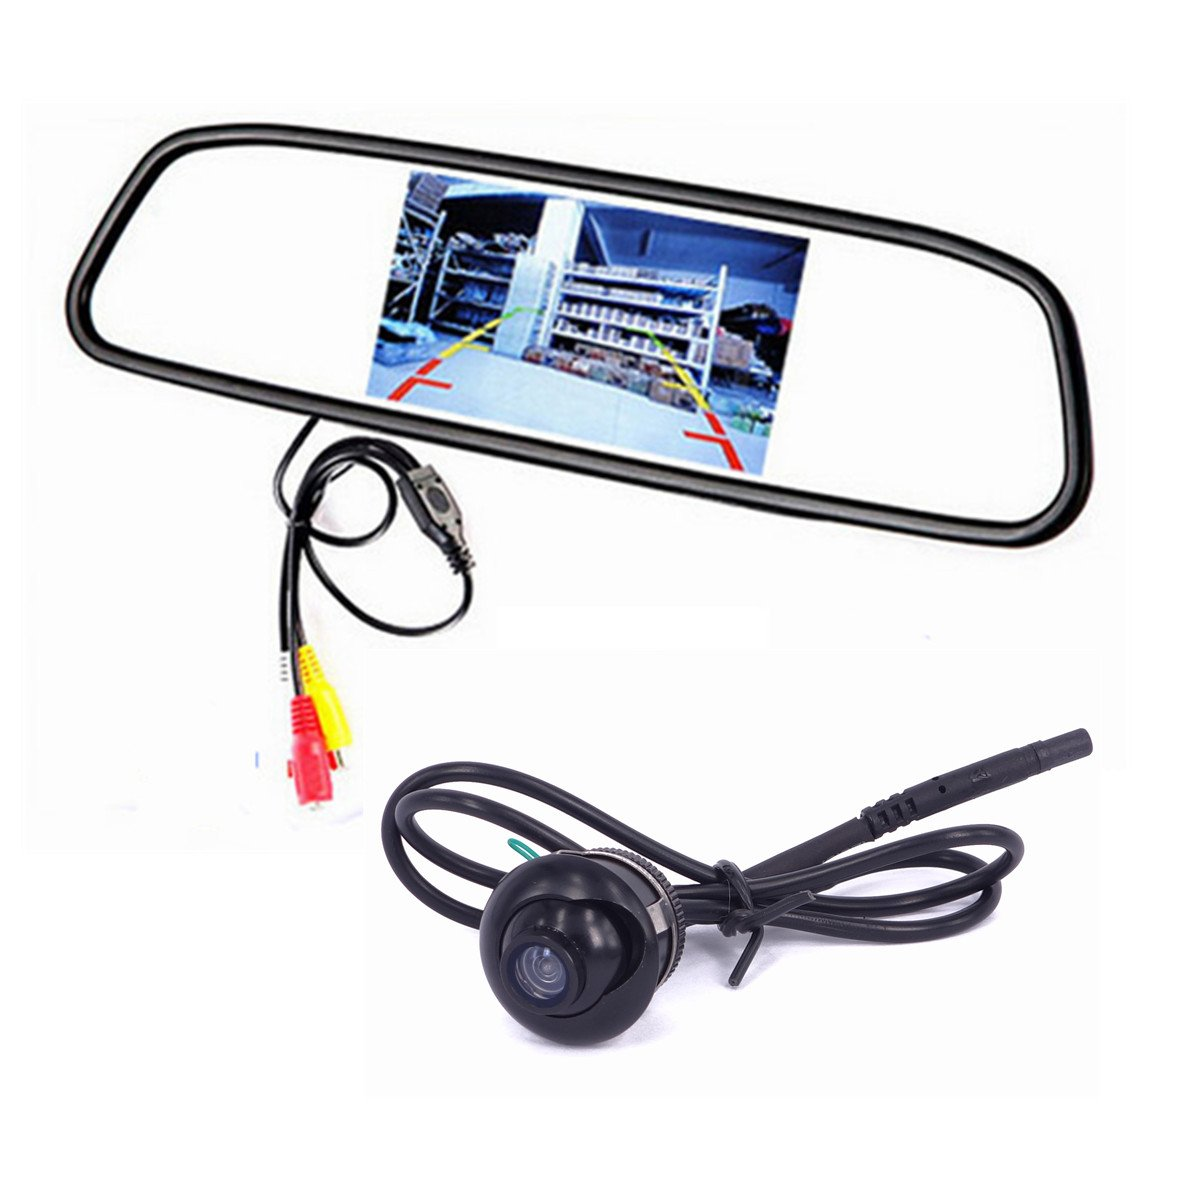 Weivision Universal 360 Degrees Car Rear Front Side View Optional Camera for All Car Weizhen Technology Co. Ltd..